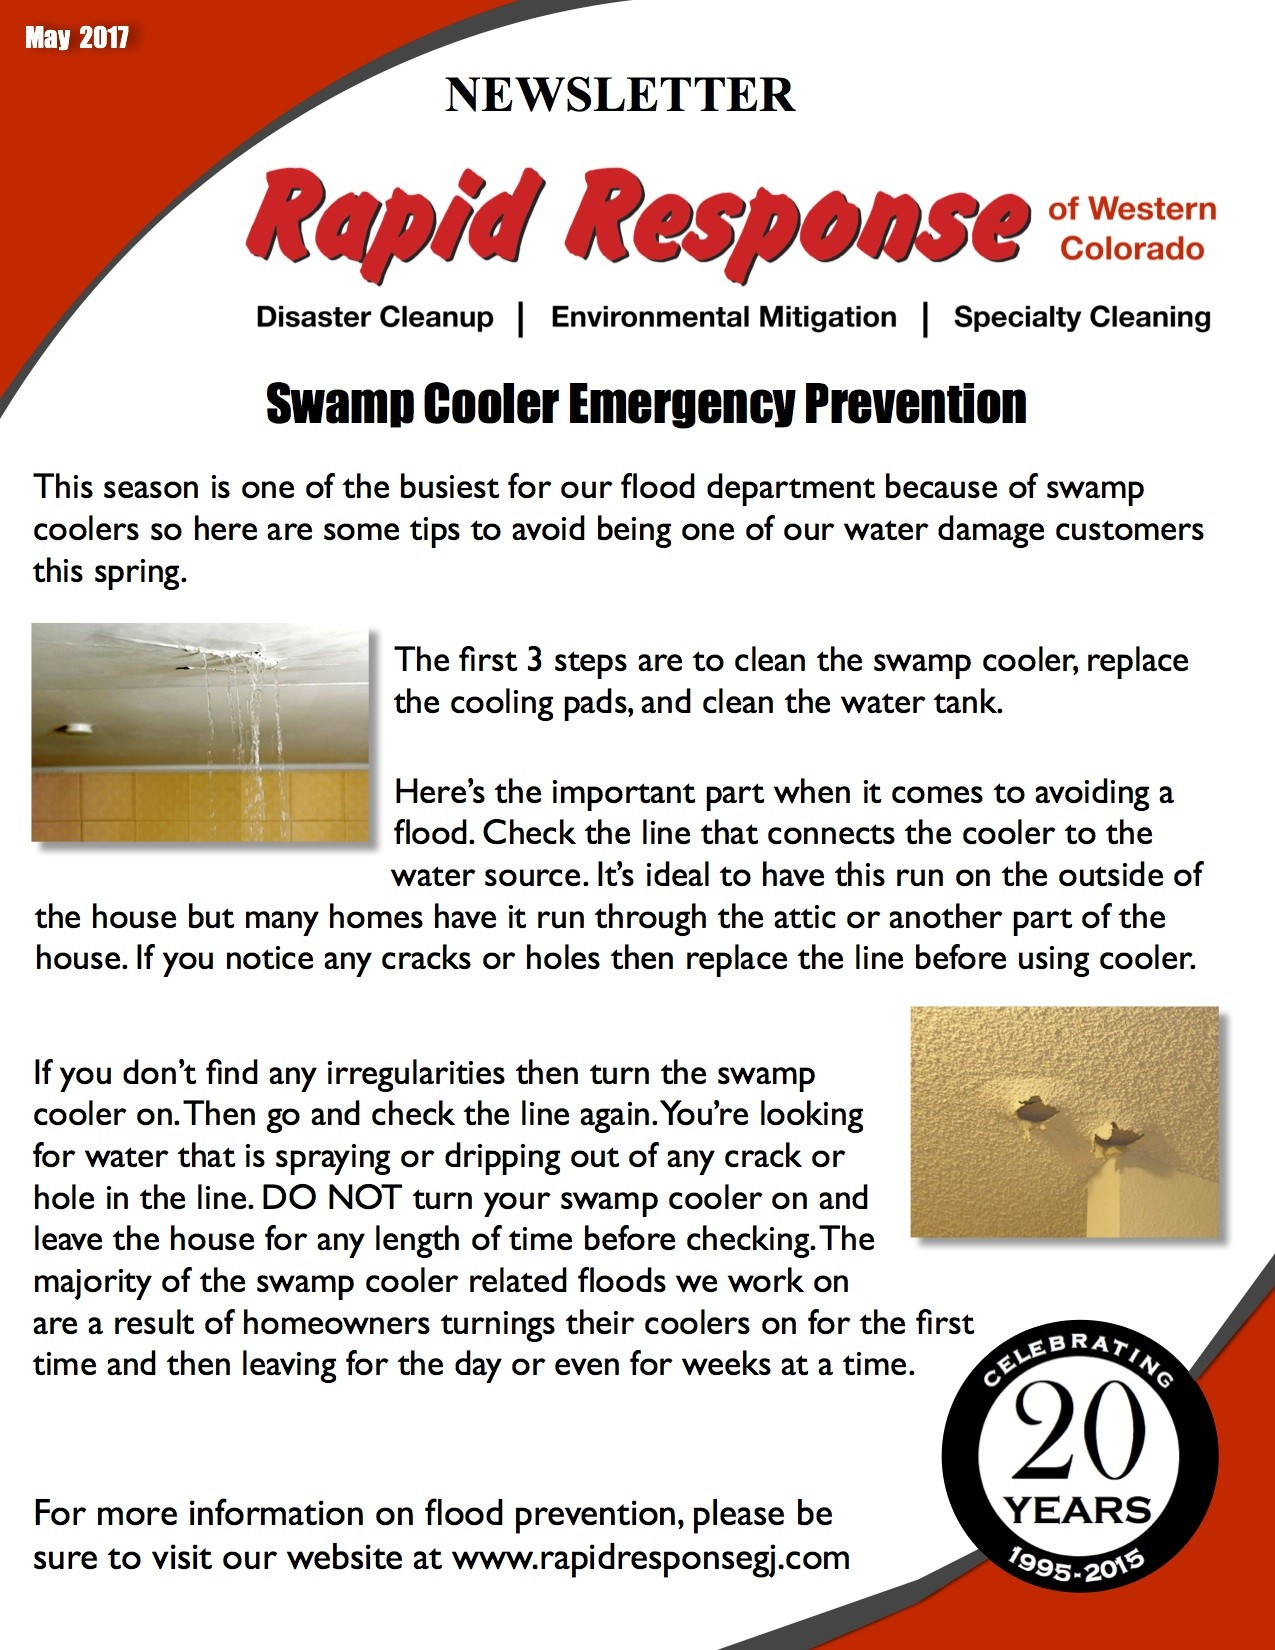 May Newsletter: Swamp Cooler Emergency Prevention